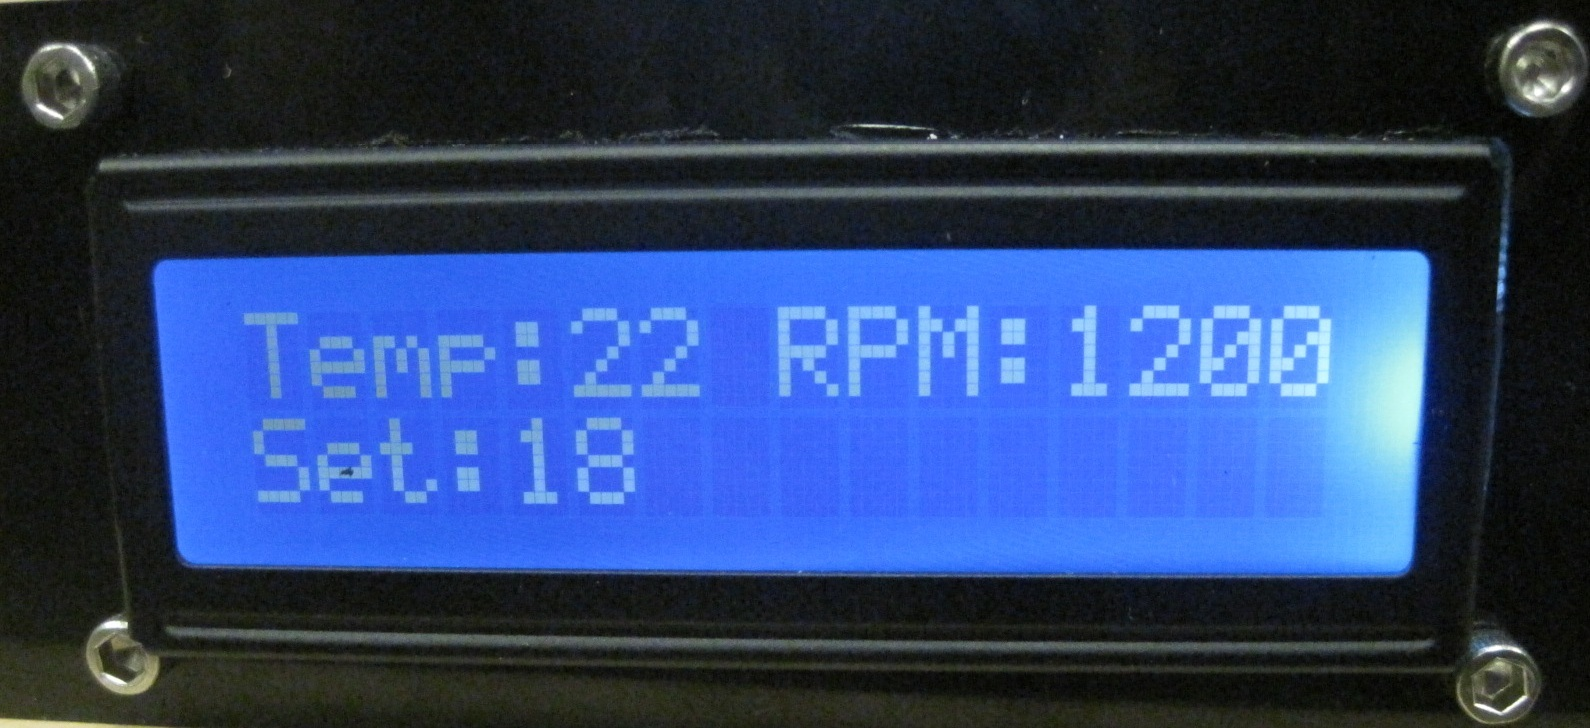 Front of LCD